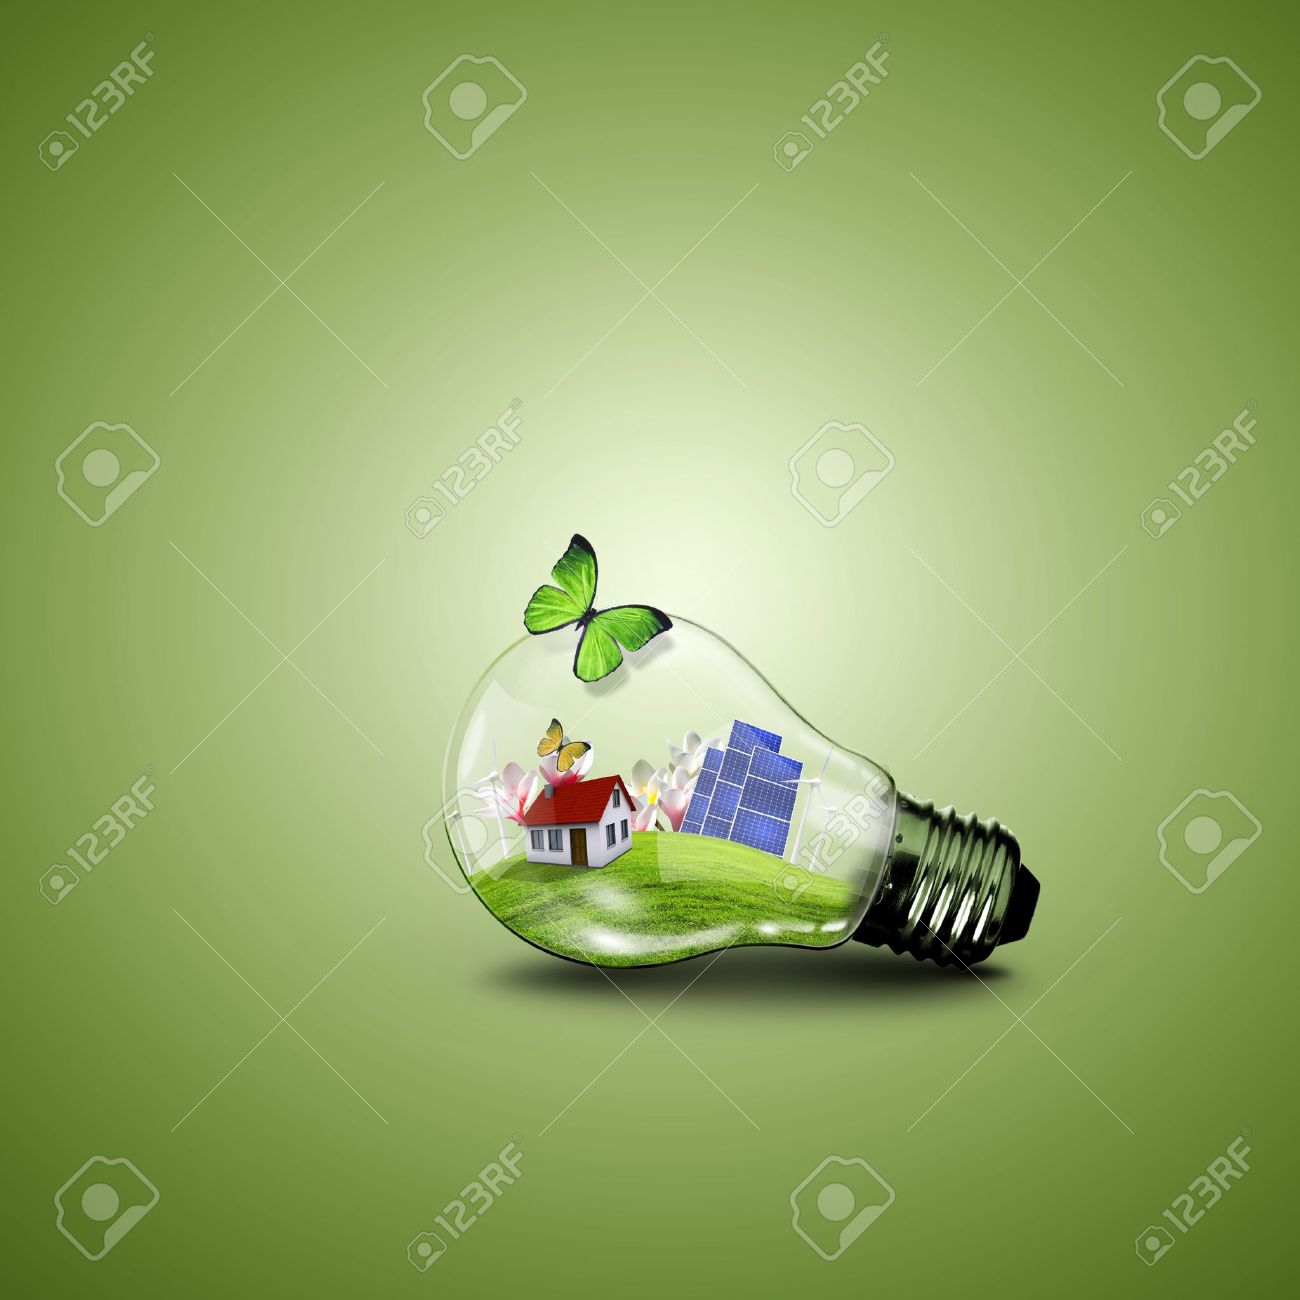 Save energy save environment clipart banner black and white download Electric Light Bulb And House Inside It As Symbol Of Green Energy ... banner black and white download